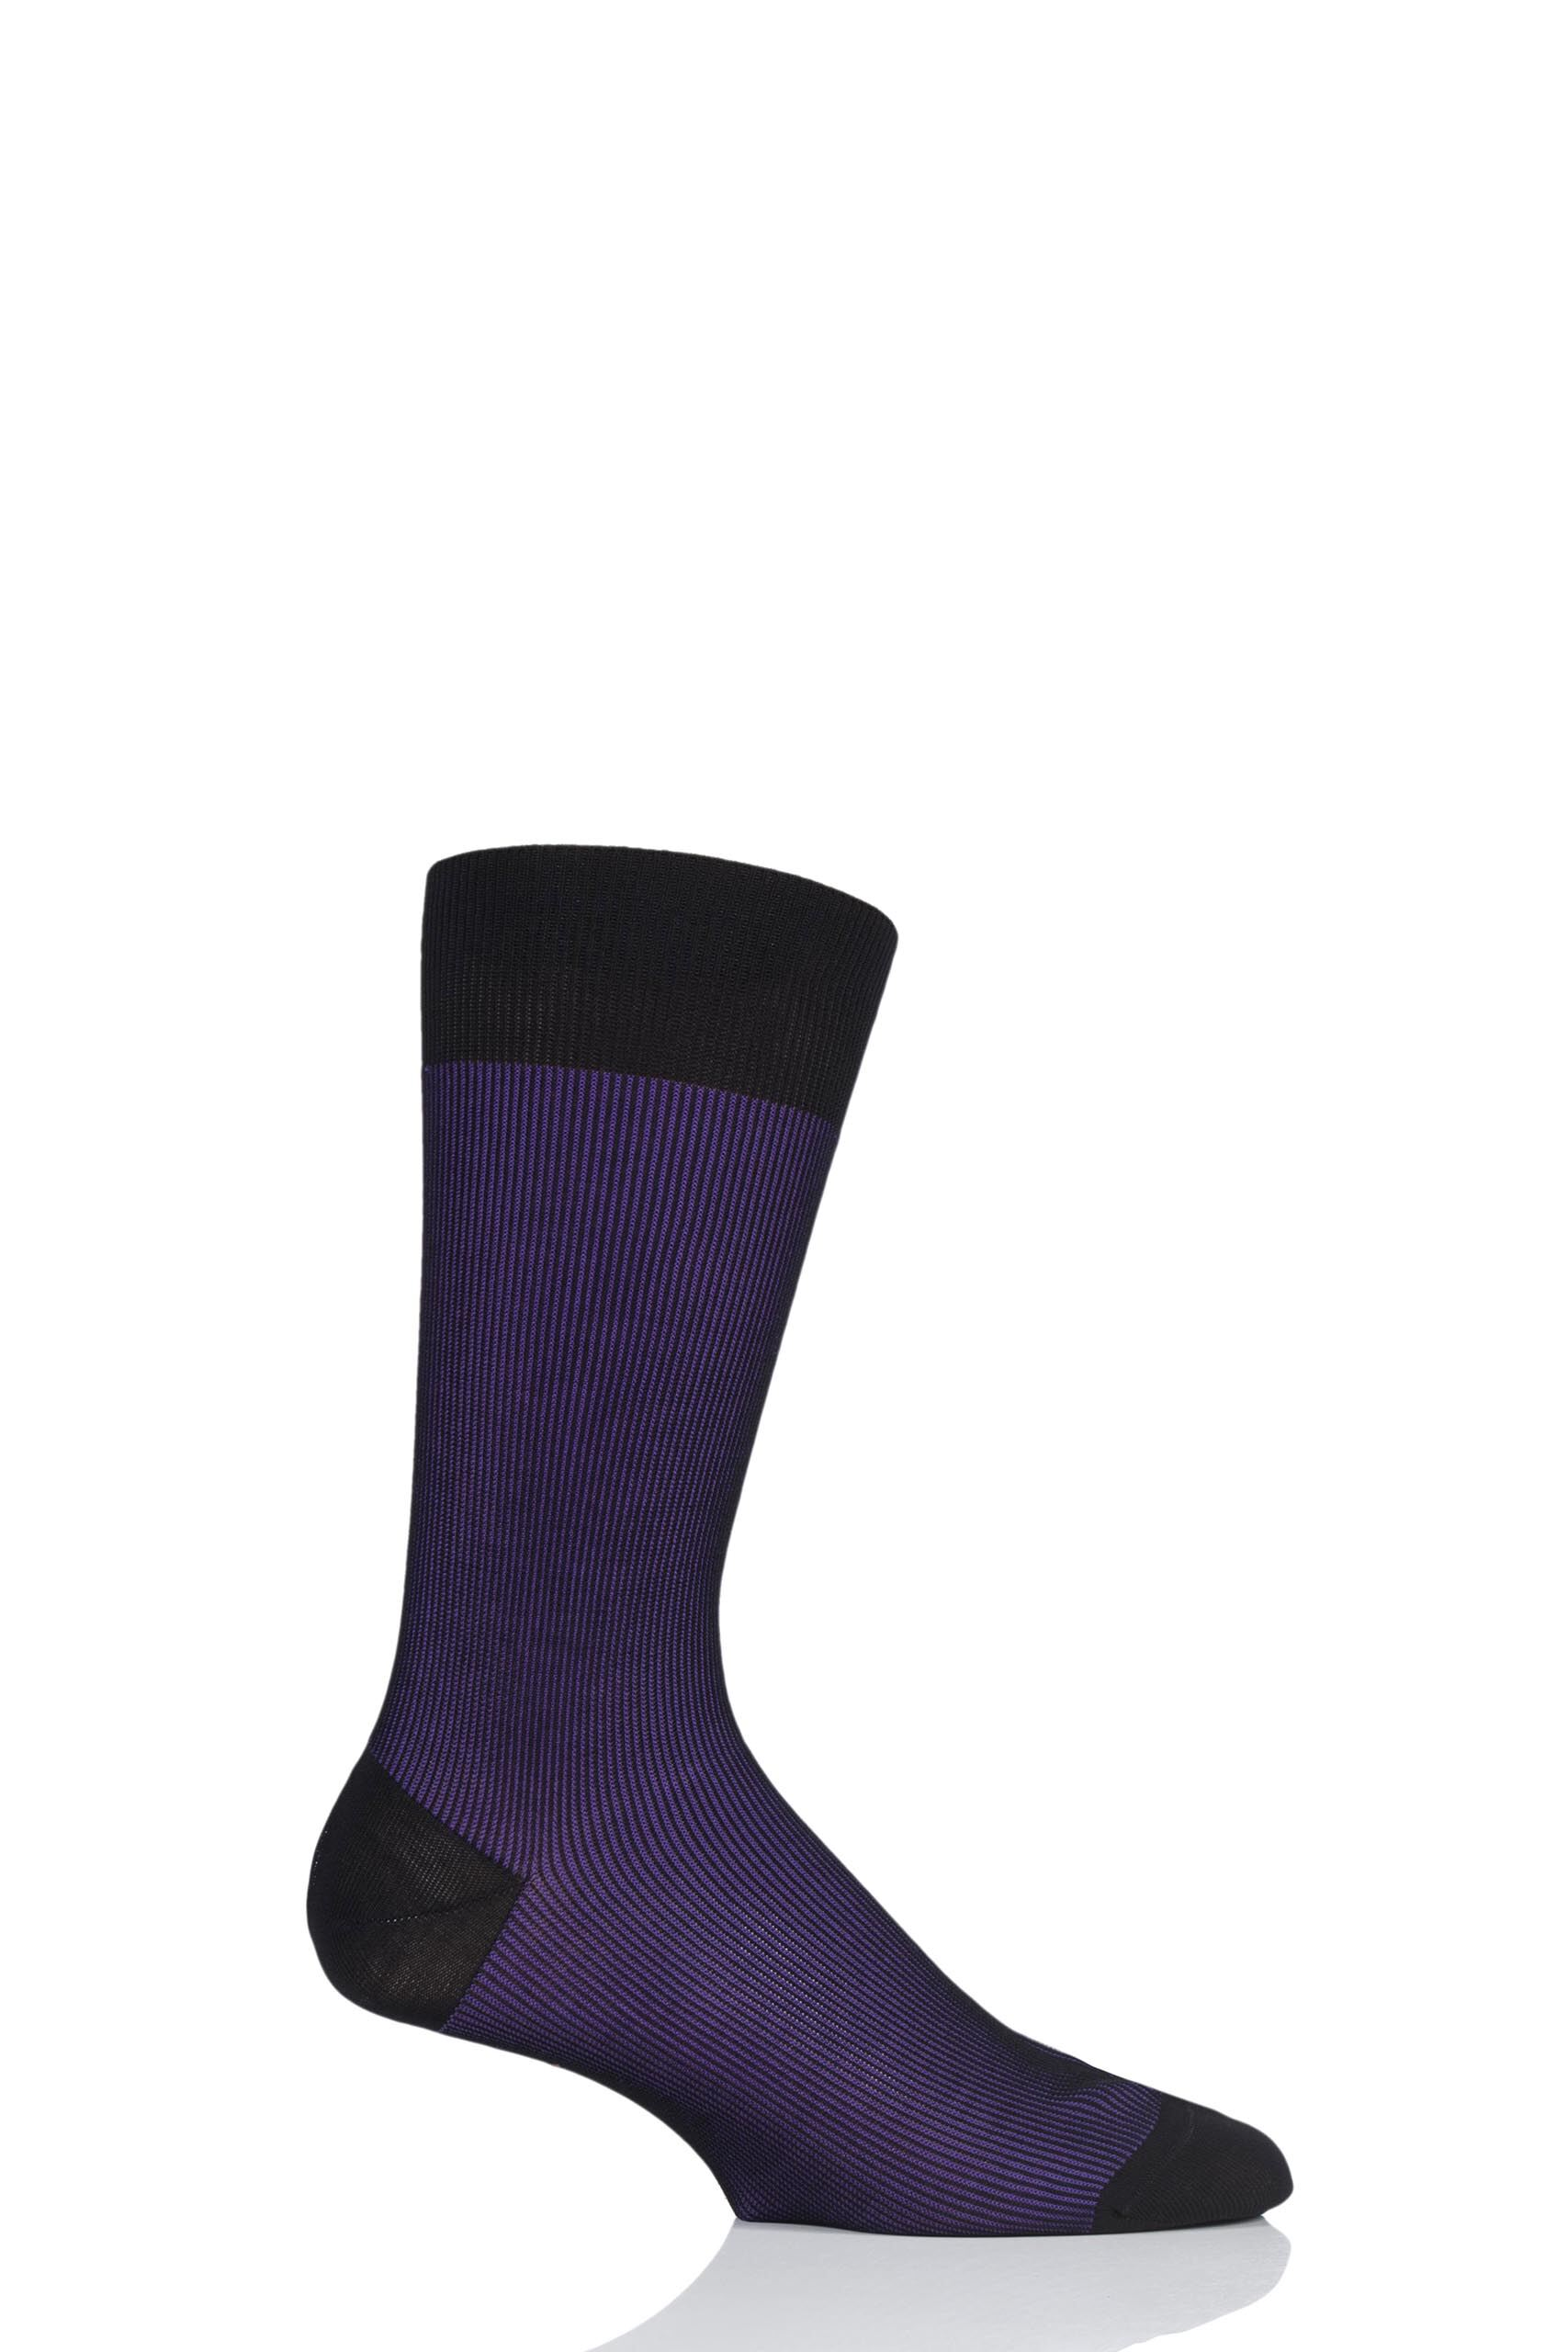 Image of 1 Pair Black 2 Santos Shadow Rib Cotton Lisle Socks Men's 10-12 Mens - Pantherella